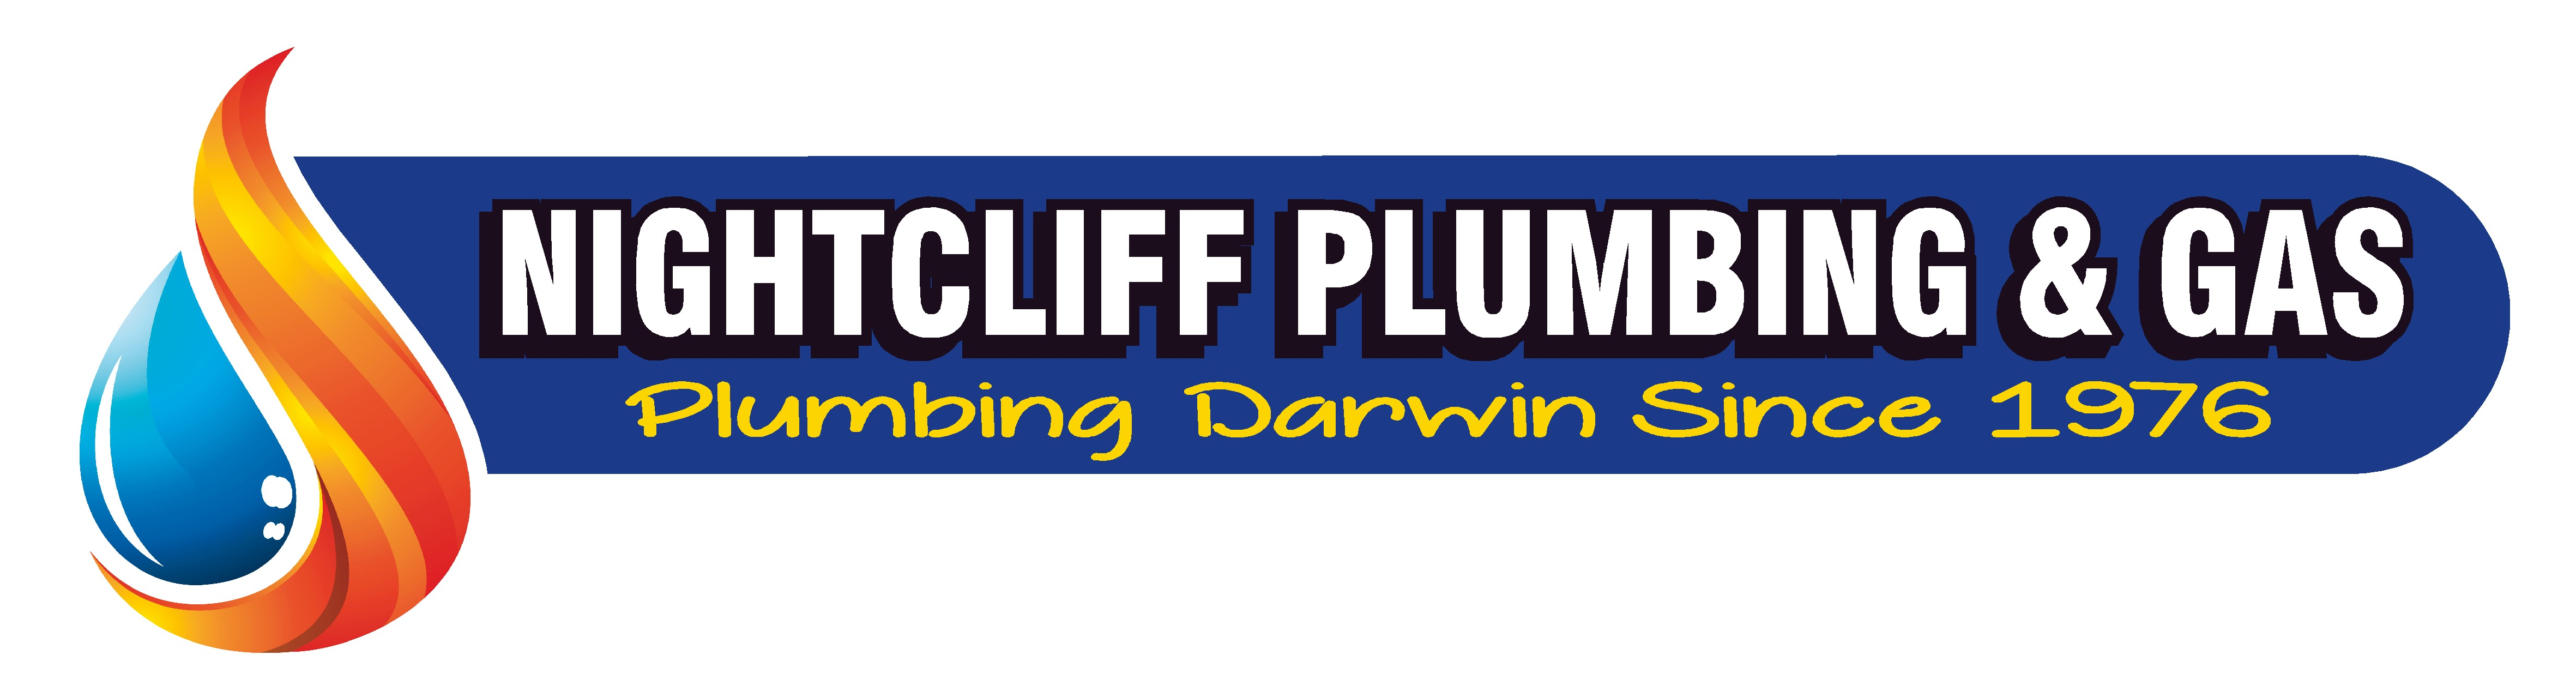 Nightcliff Plumbing & Gas - Coconut Grove, NT 0810 - (08) 8985 5200 | ShowMeLocal.com